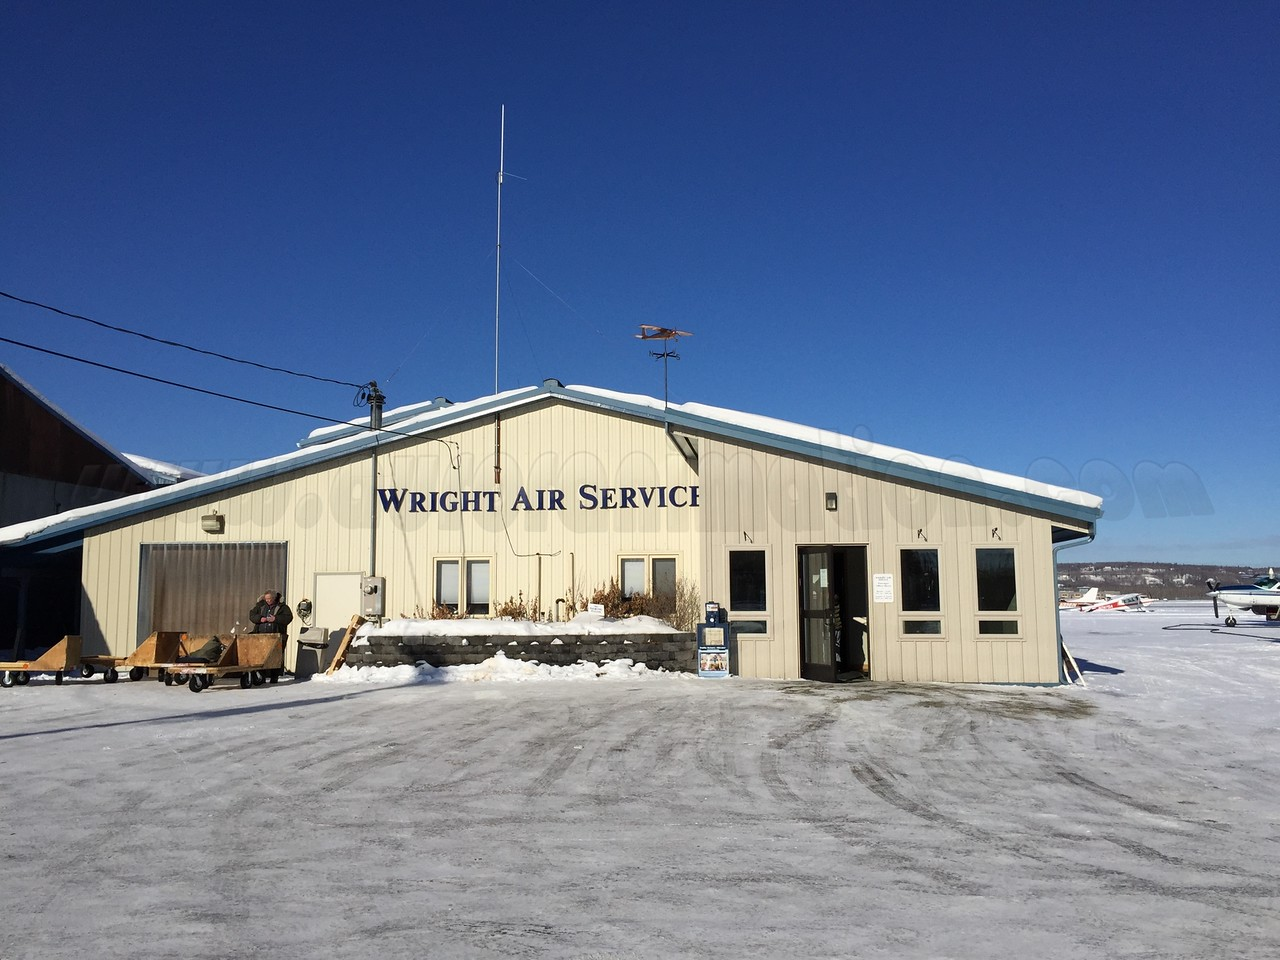 Wright Air Service at Fairbanks International Airport